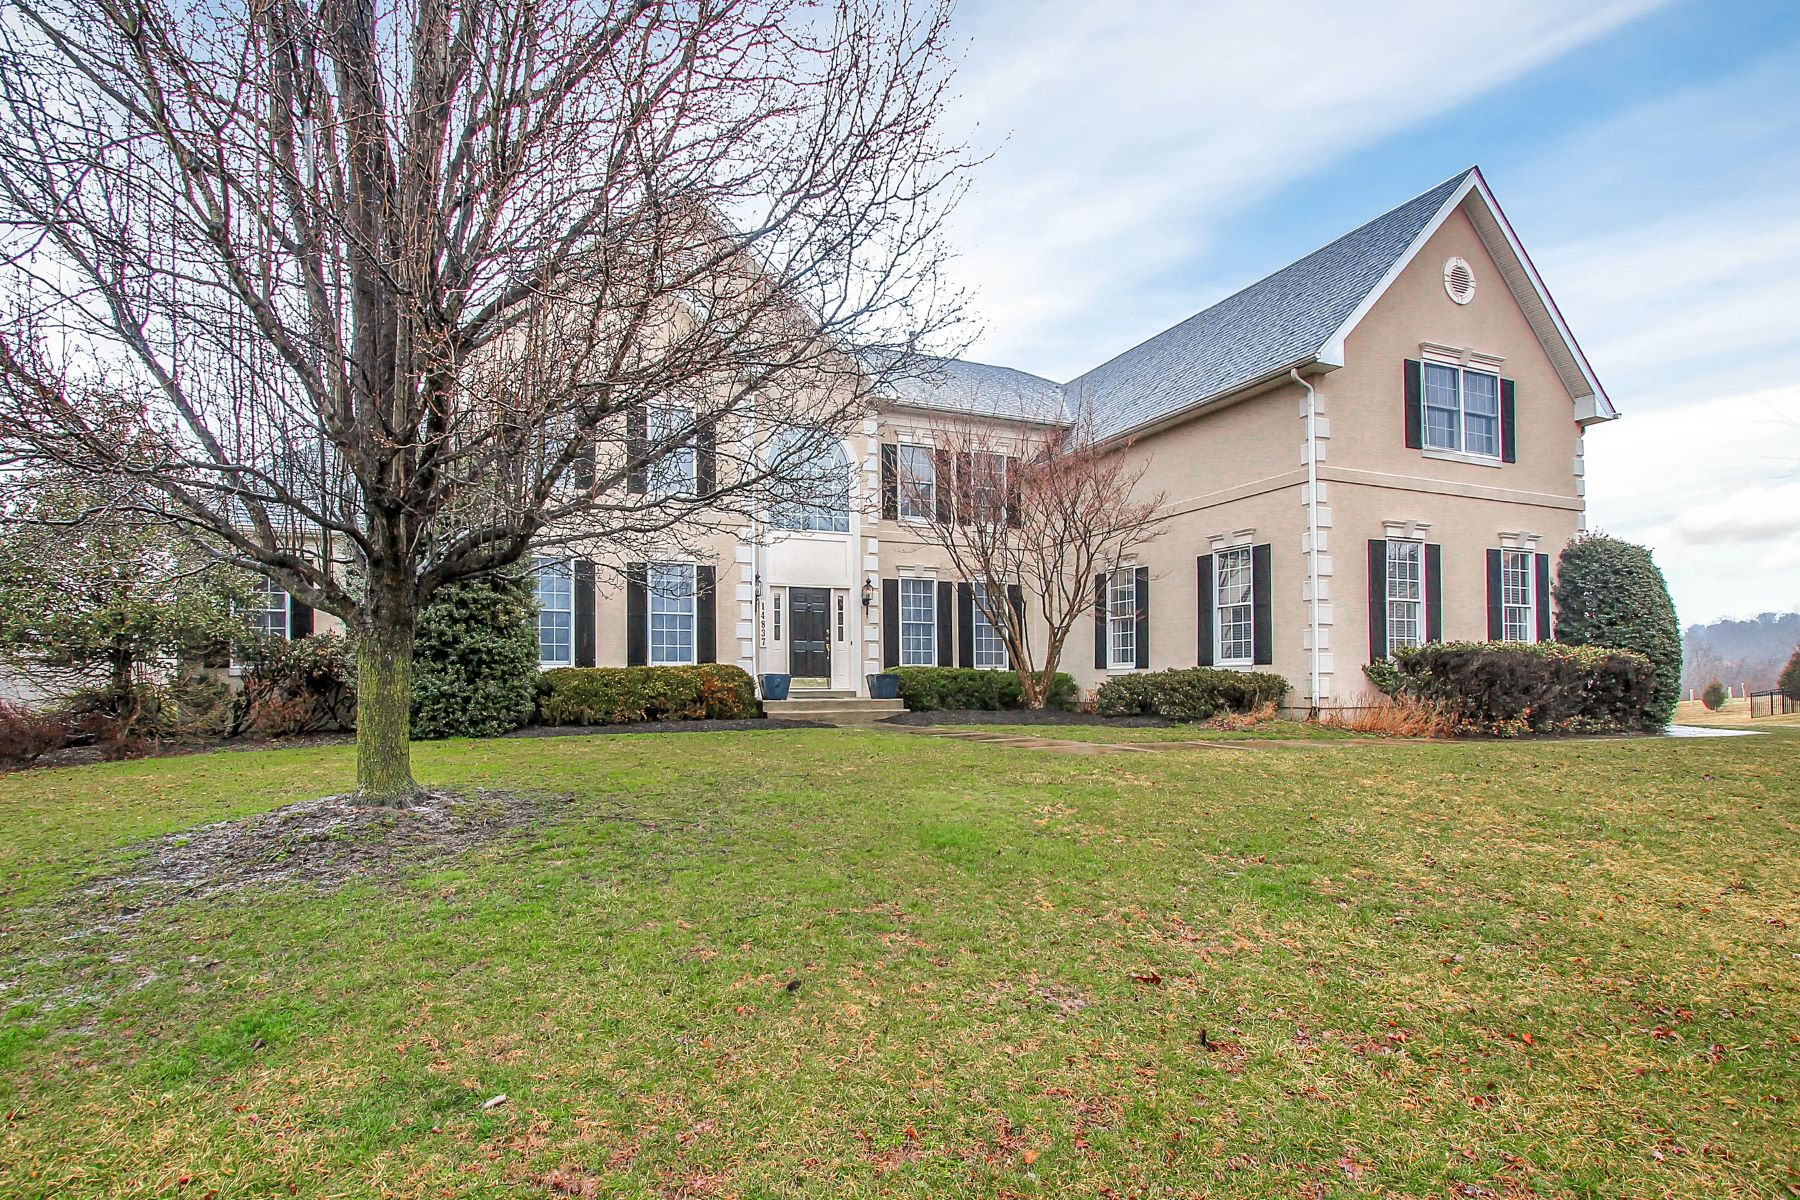 Single Family Homes for Active at Hunt Valley Estates 14837 Hunting Way Phoenix, Maryland 21131 United States